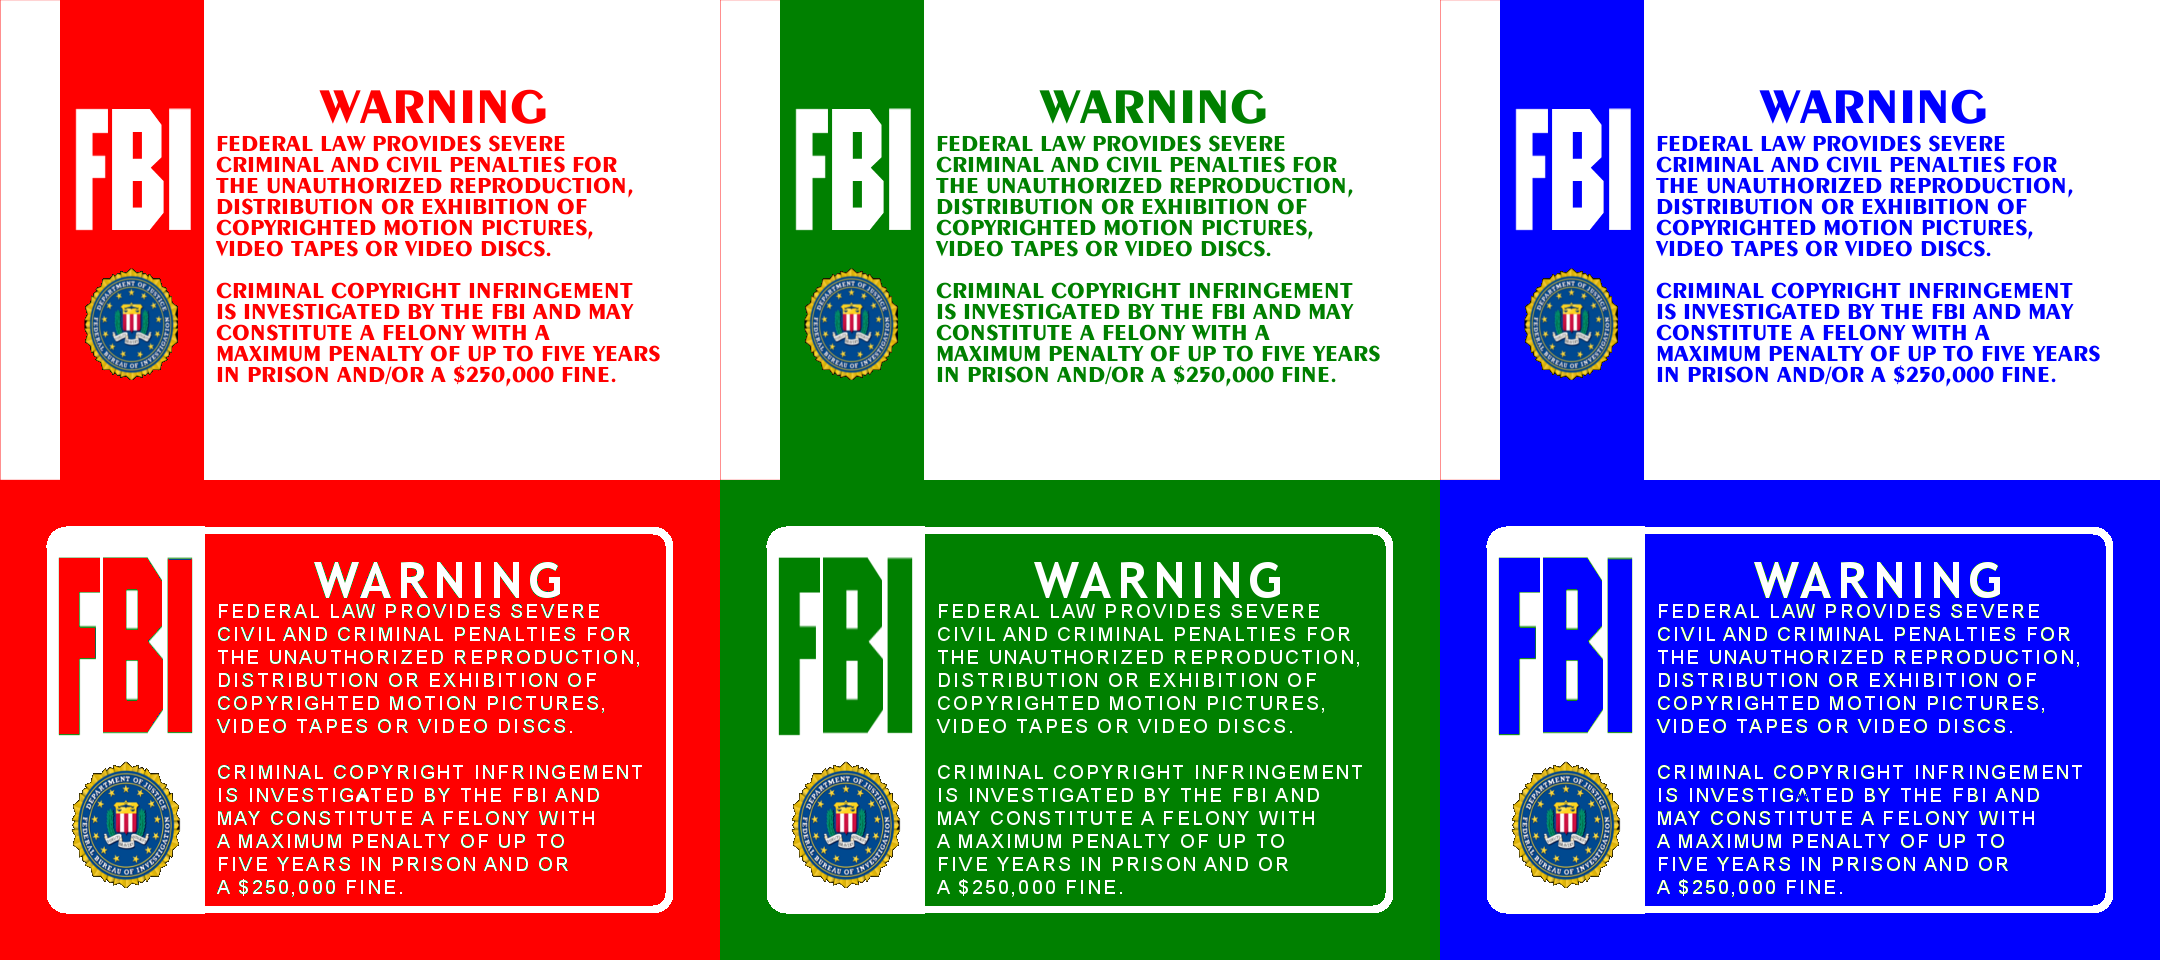 blue fbi warning screens www imgkid com the image kid fbi anti piracy warning screen fbi anti-piracy warning unauthorized copying is punishable under federal law